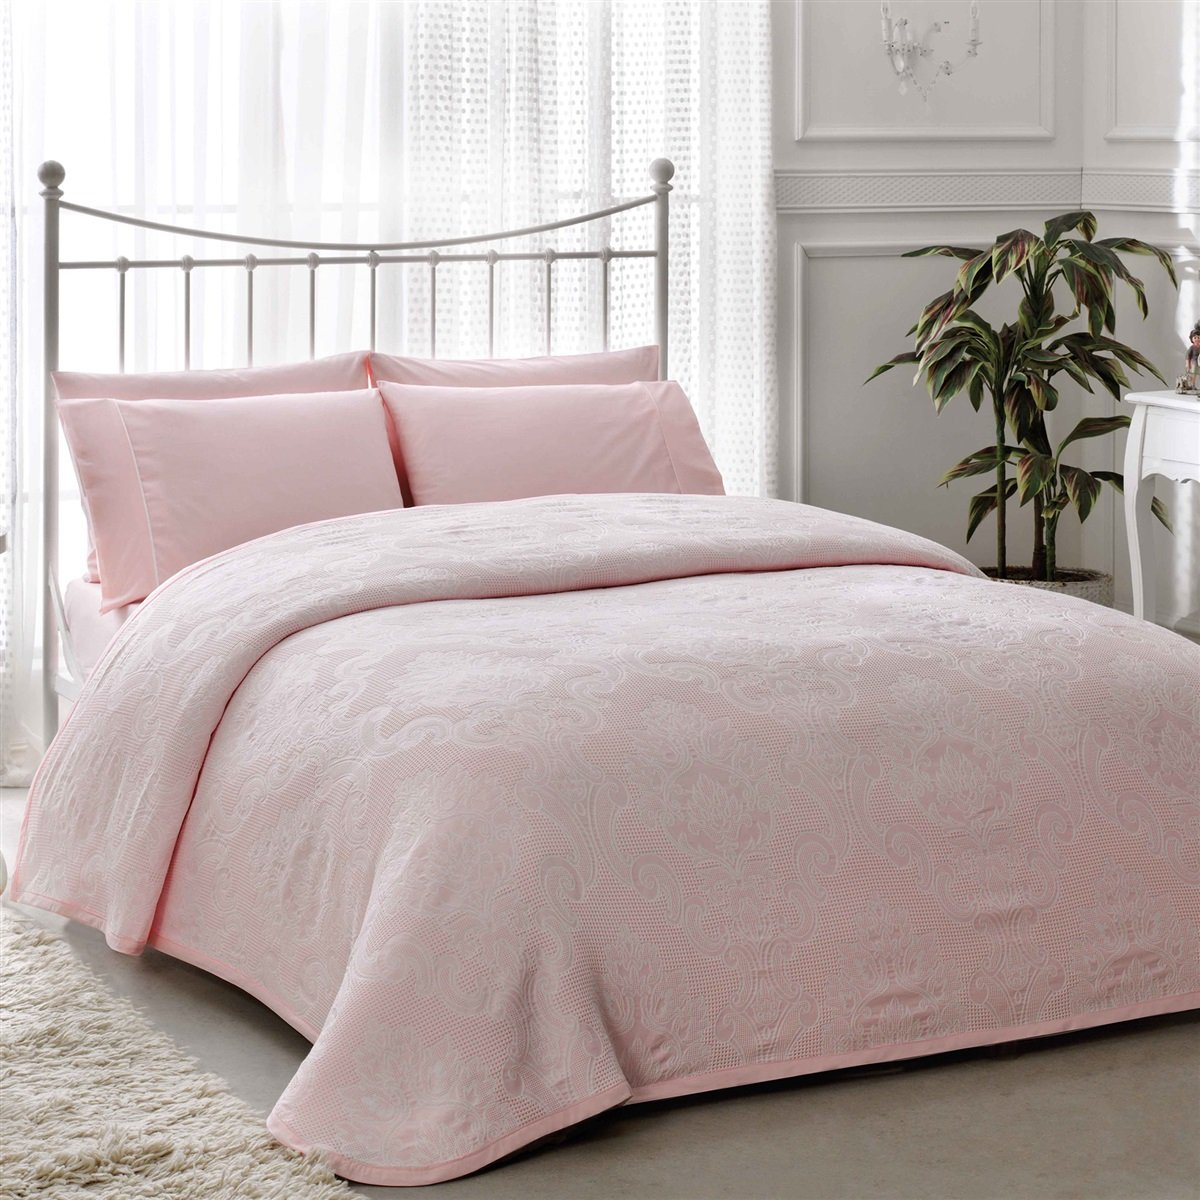 Cream & Dusty Pink (Dusty Pink Bedspread Set